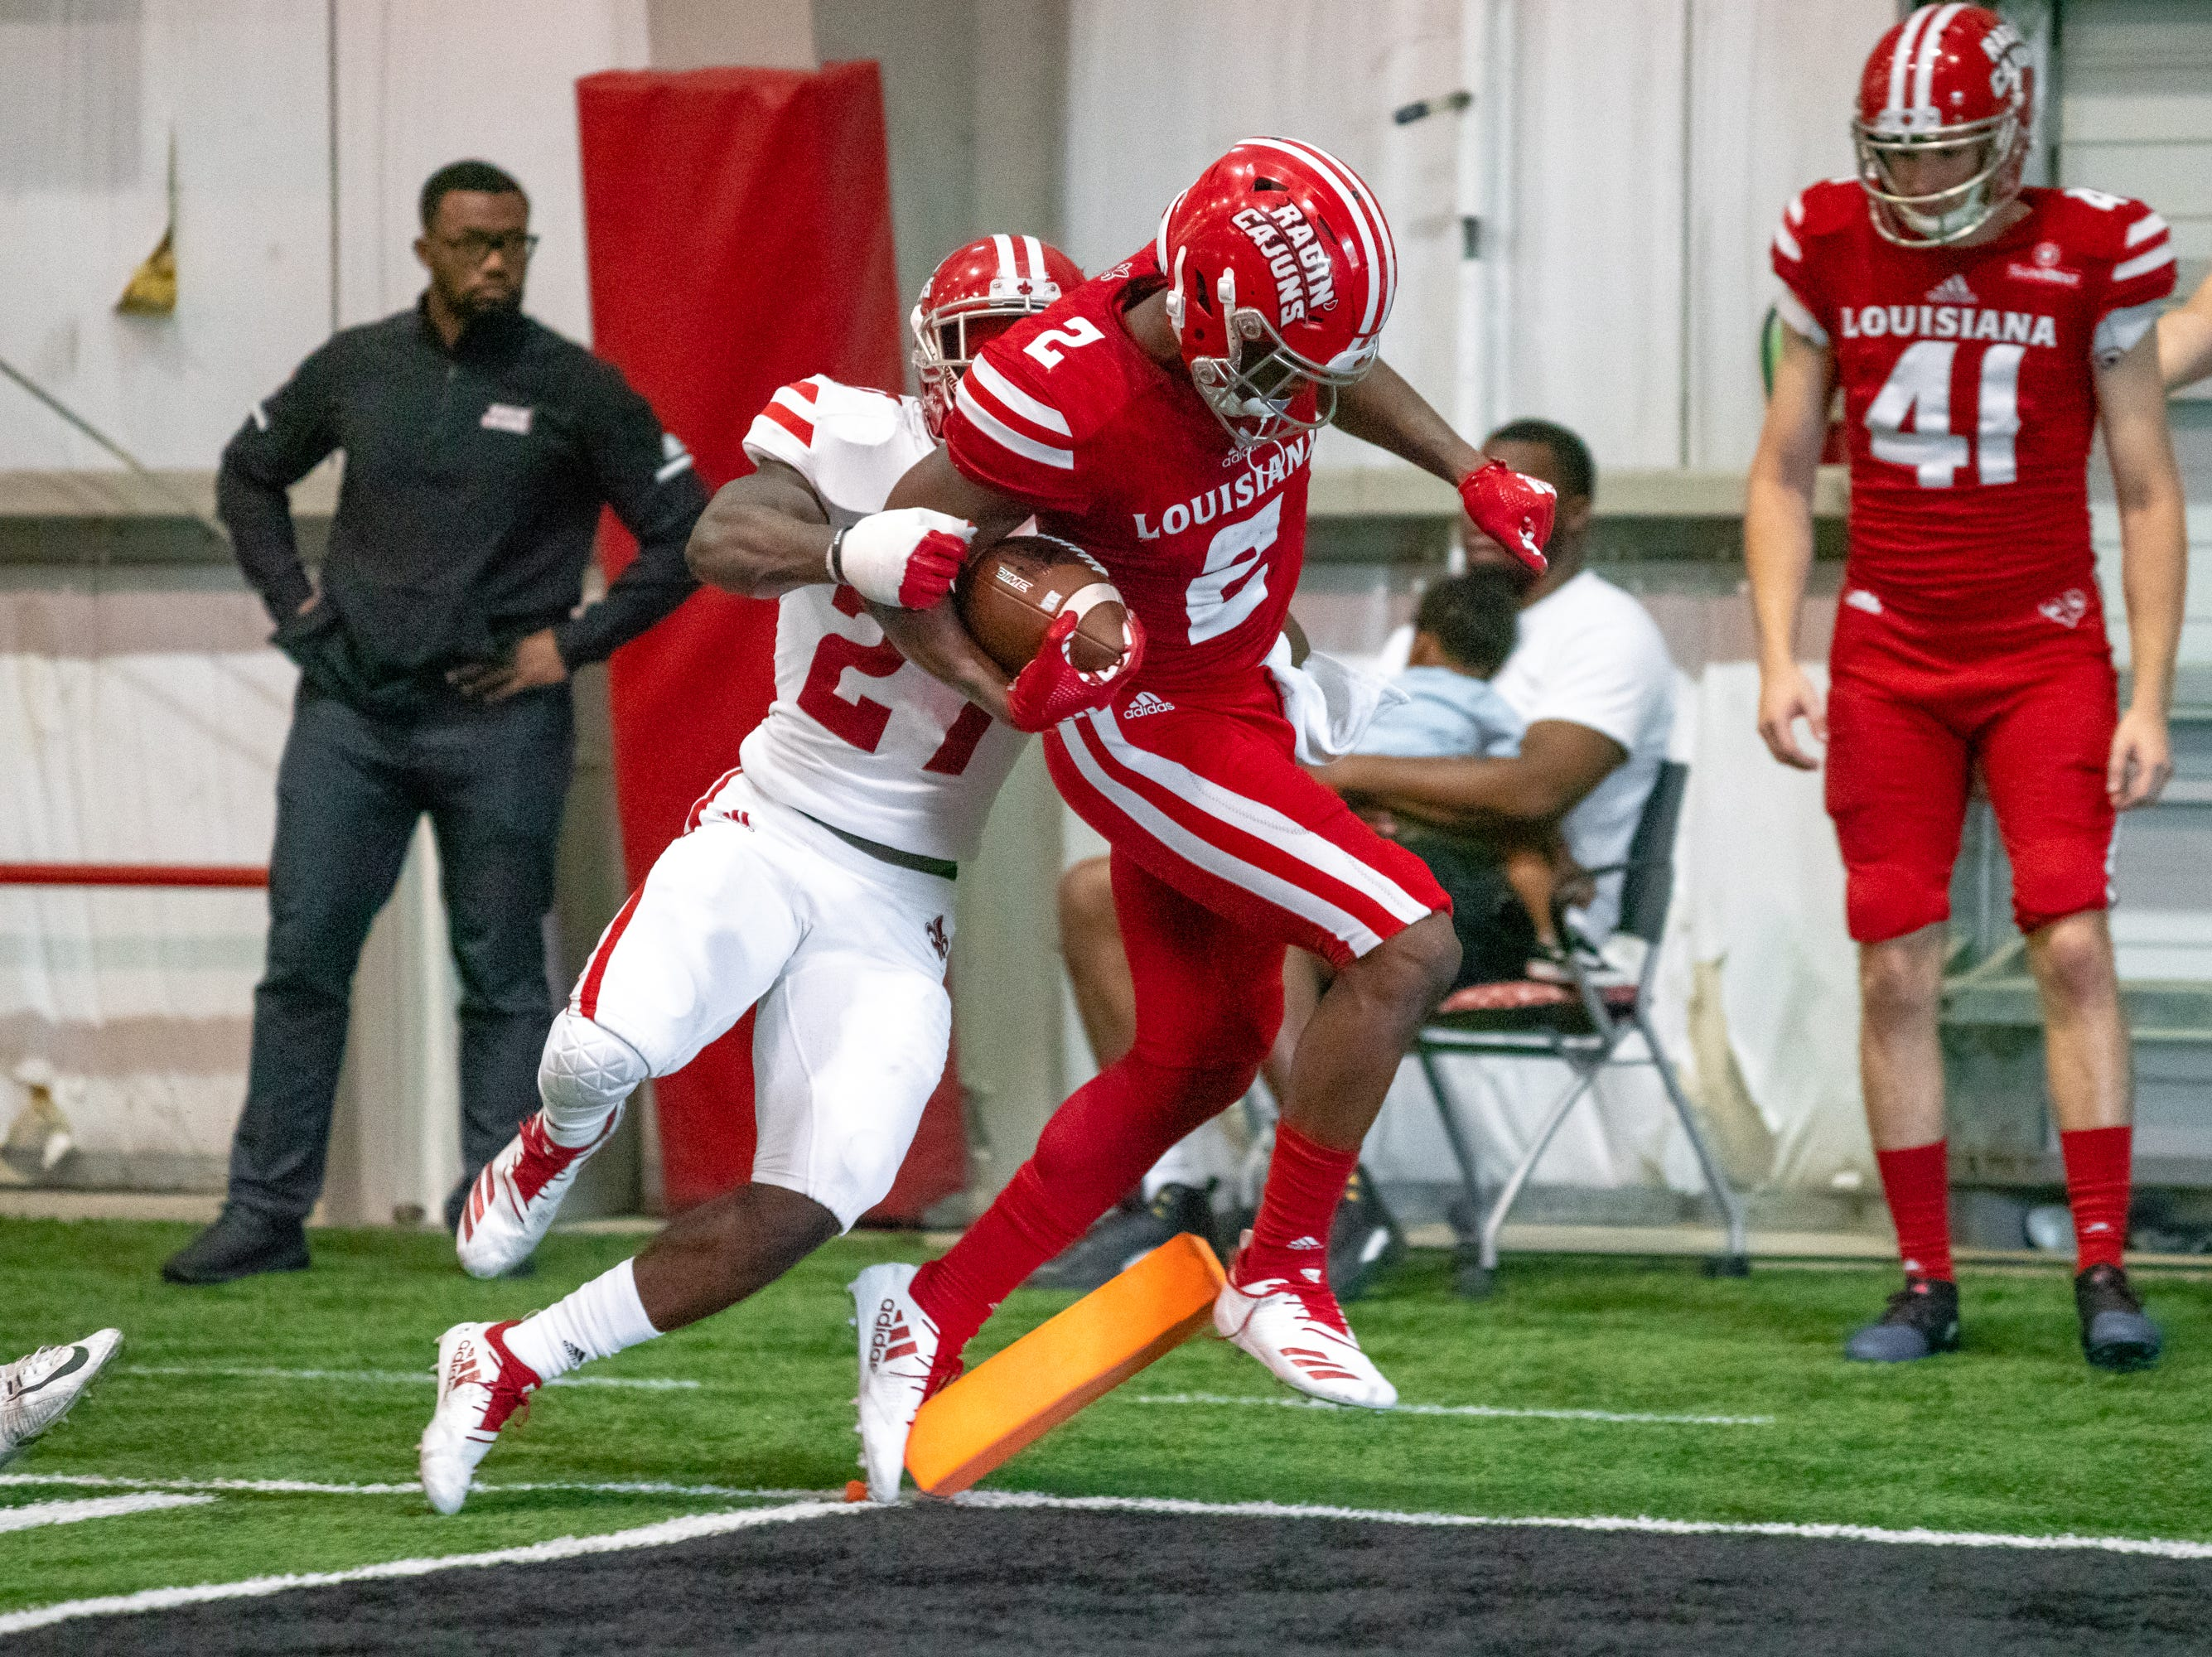 UL's Ja'Marcus Bradley steps out of bounds before running the ball into the endzone as the Ragin' Cajuns football team plays their annual Spring football game against one another in the Leon Moncla trainig facility on April 13, 2019.